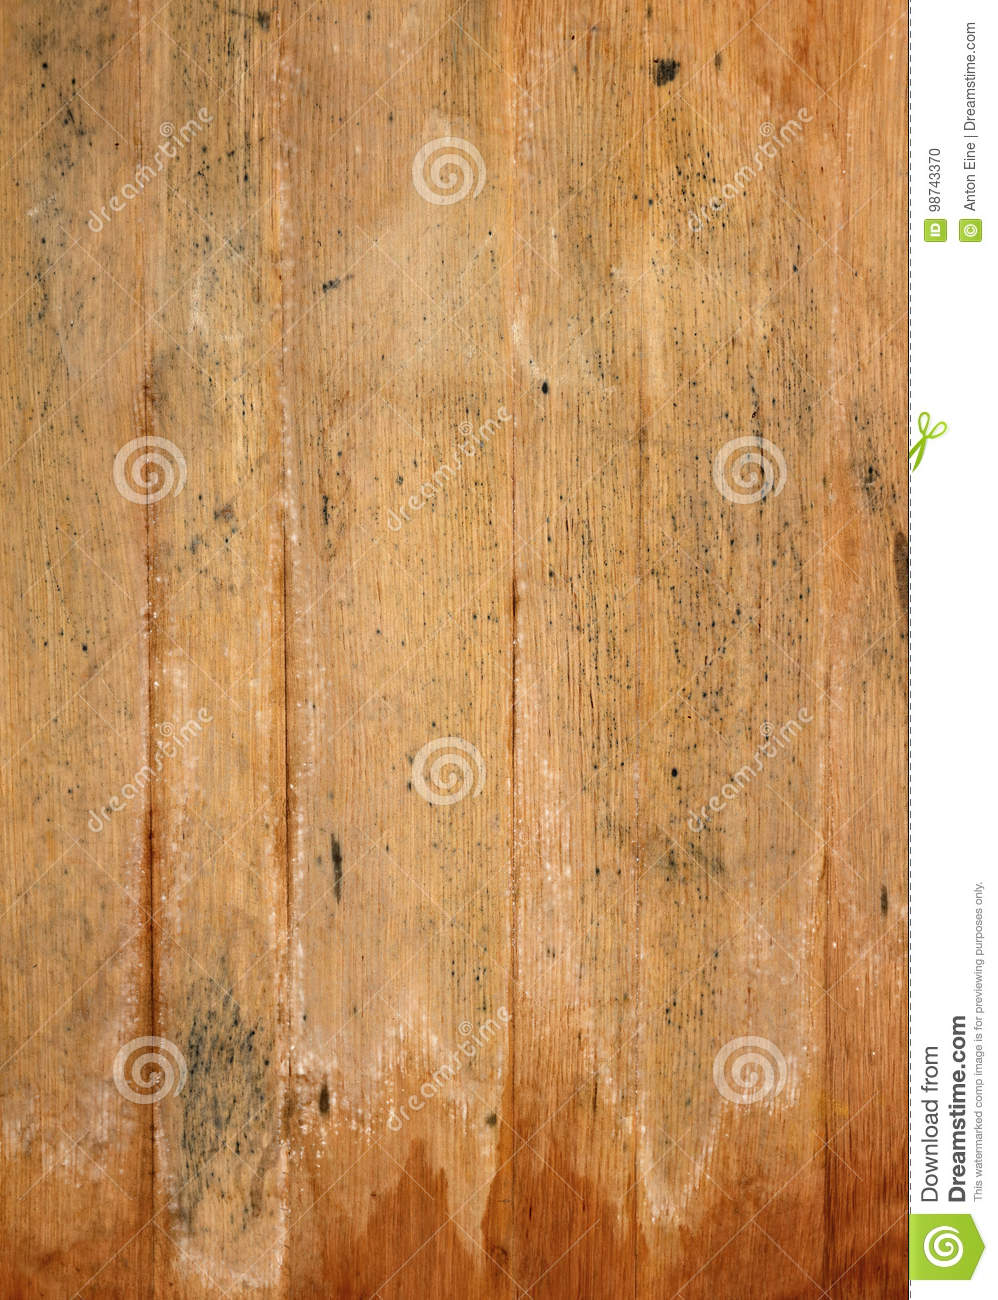 Old Aged Brown Wooden Planks Background Texture Stock Photo - Image